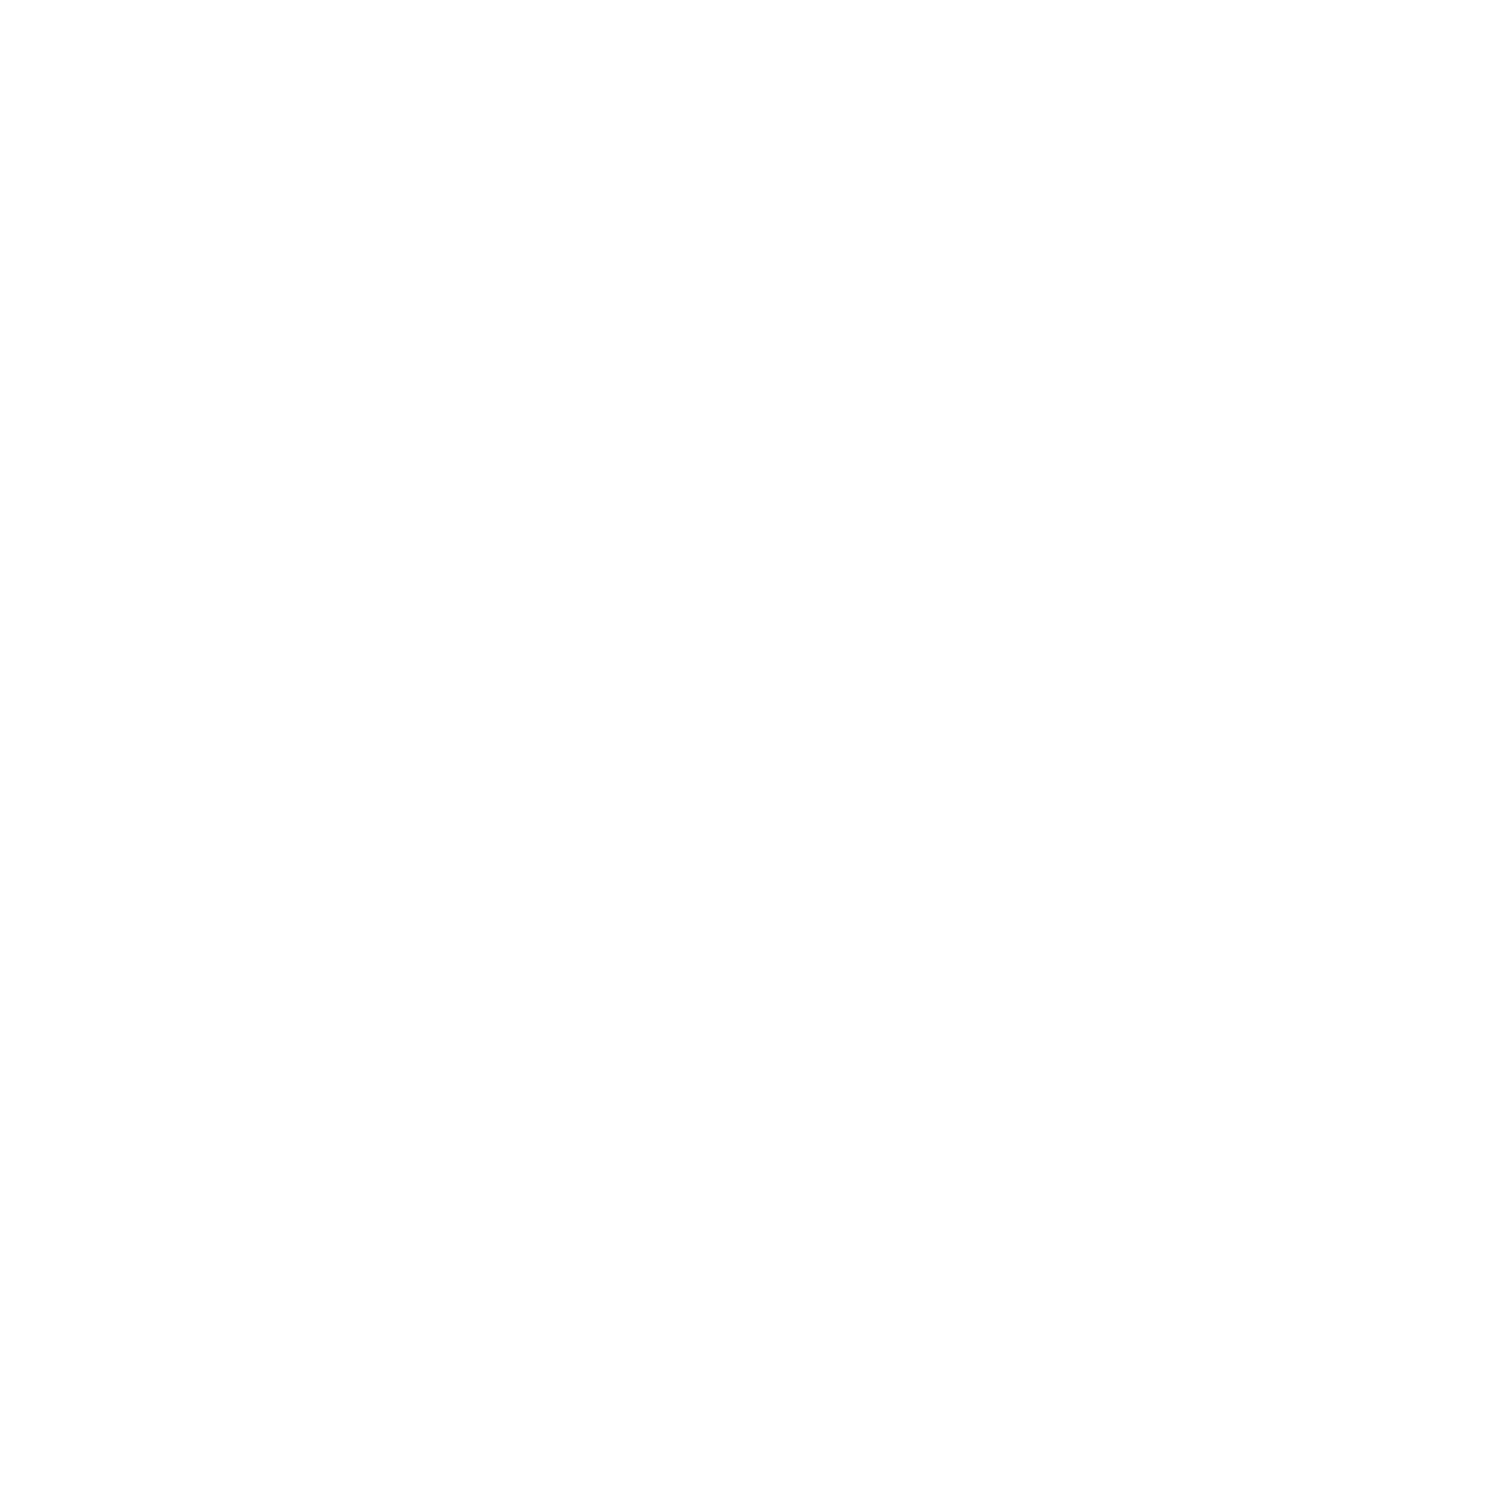 We are Autoheart